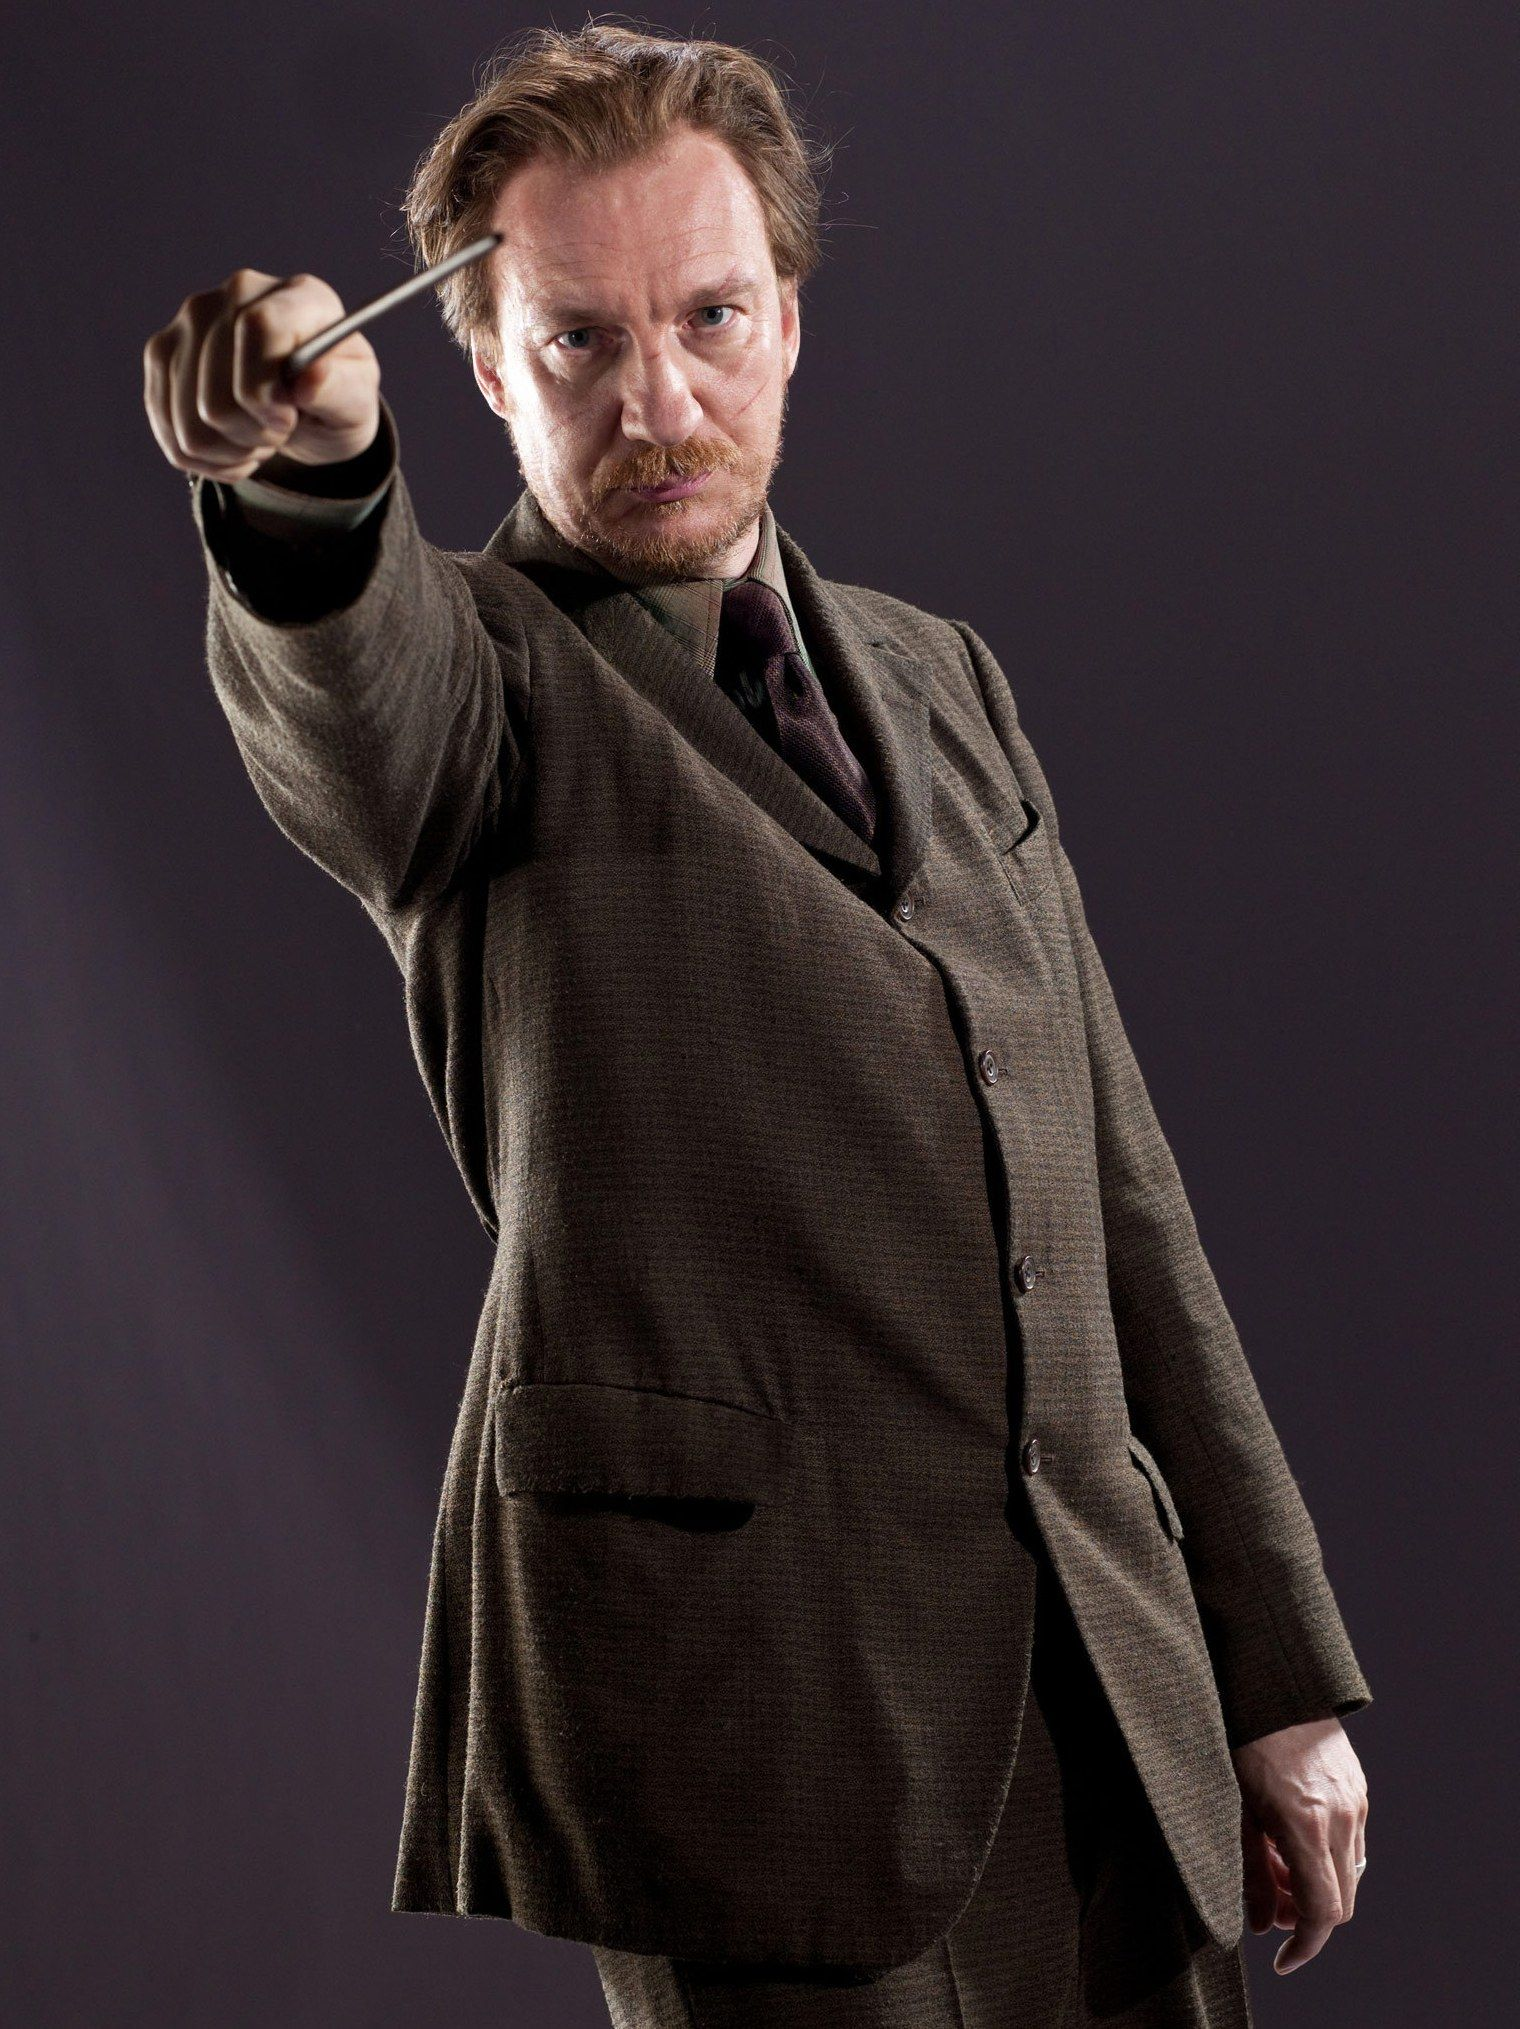 David Thewlis Birthday Real Name Age Weight Height Family Wife Affairs Bio More Lupin Harry Potter Harry Potter Characters Remus Lupin